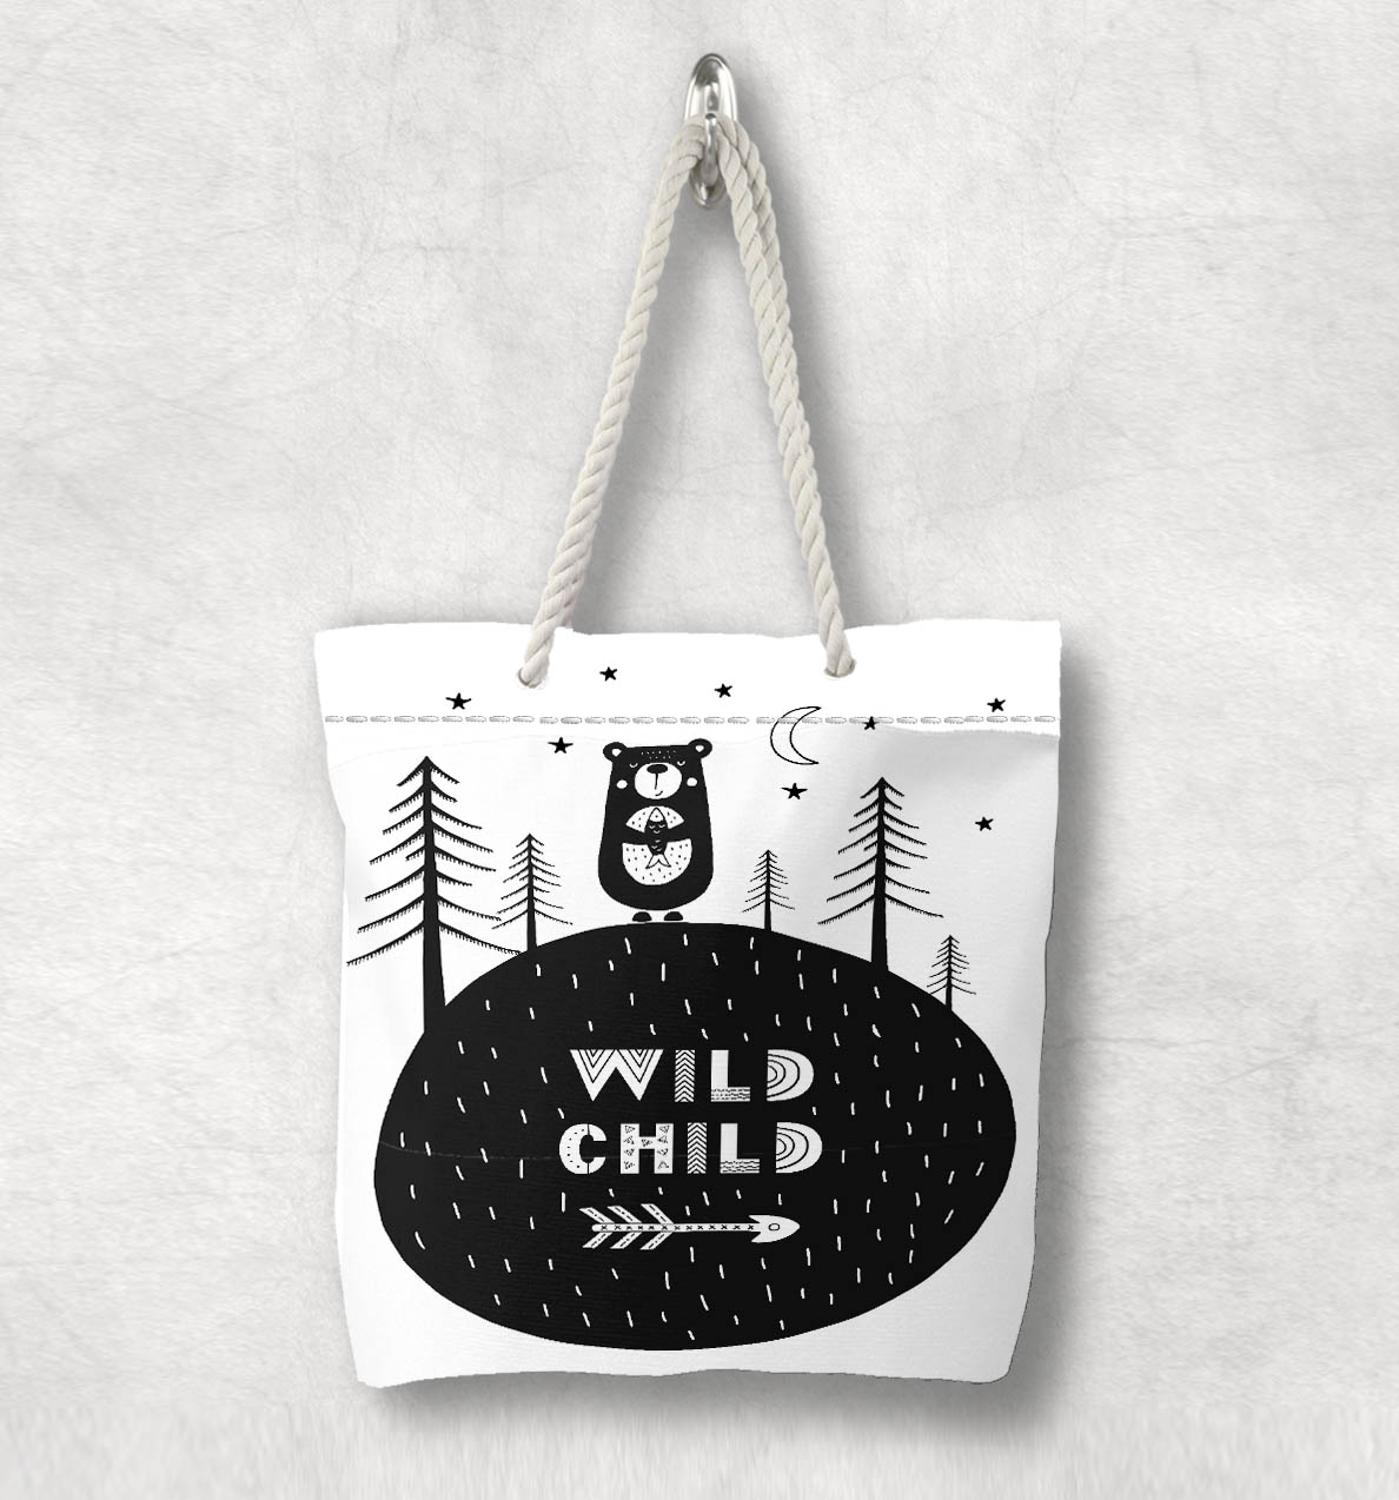 Anders Wild Kind Beas Jungle Boom Dieren Scandinavische Wit Touw Handvat Canvas Tas Cartoon Print Ritssluiting Tote Bag Schoudertas